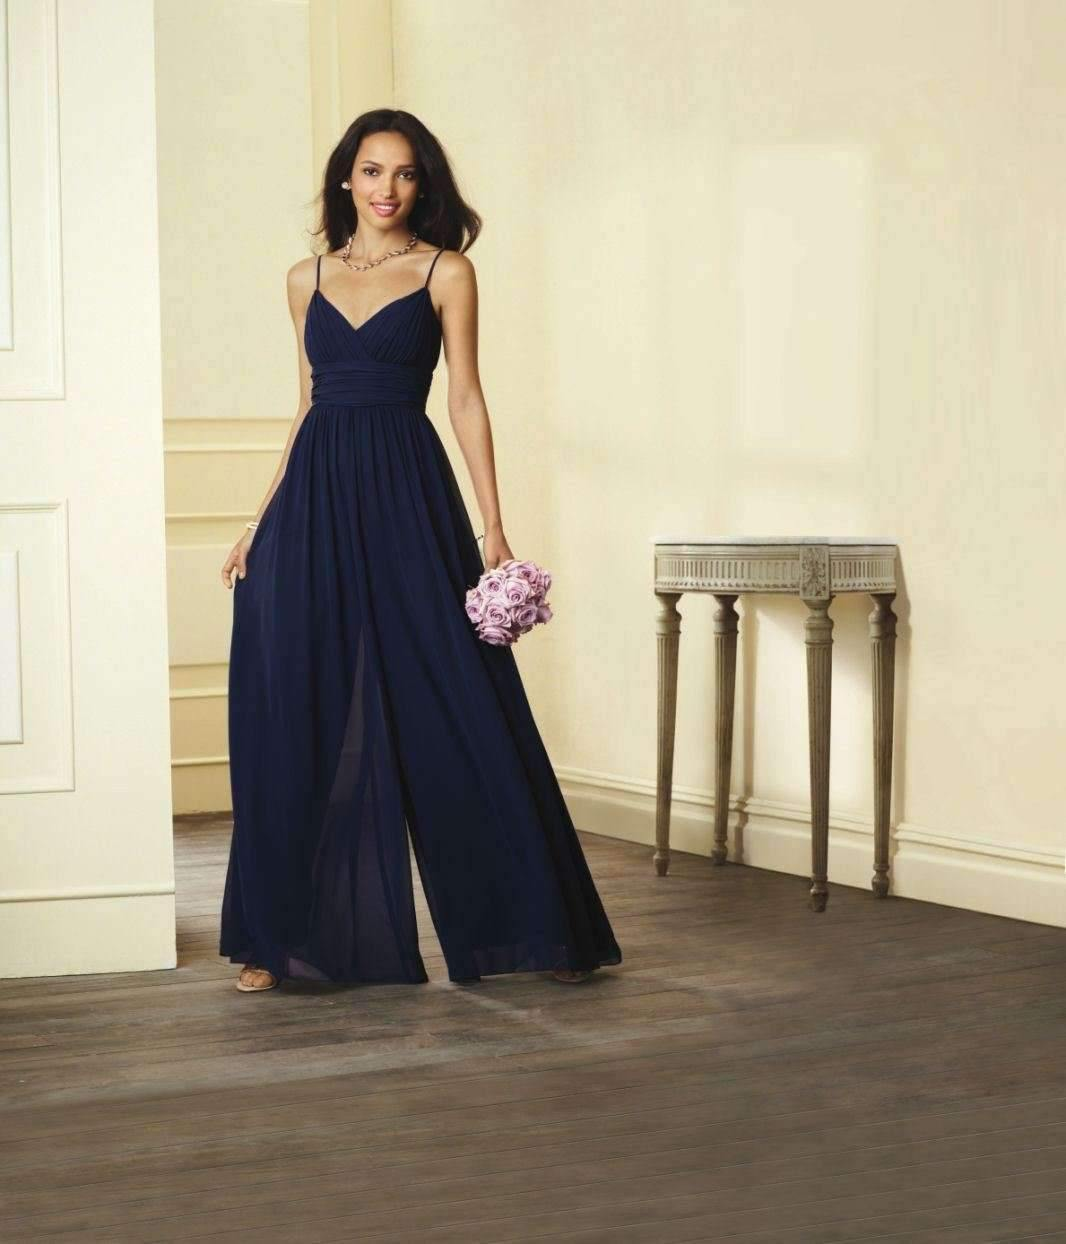 UK14 NAVY BLUE - SANDERA - SALE - Adore Bridal and Occasion Wear